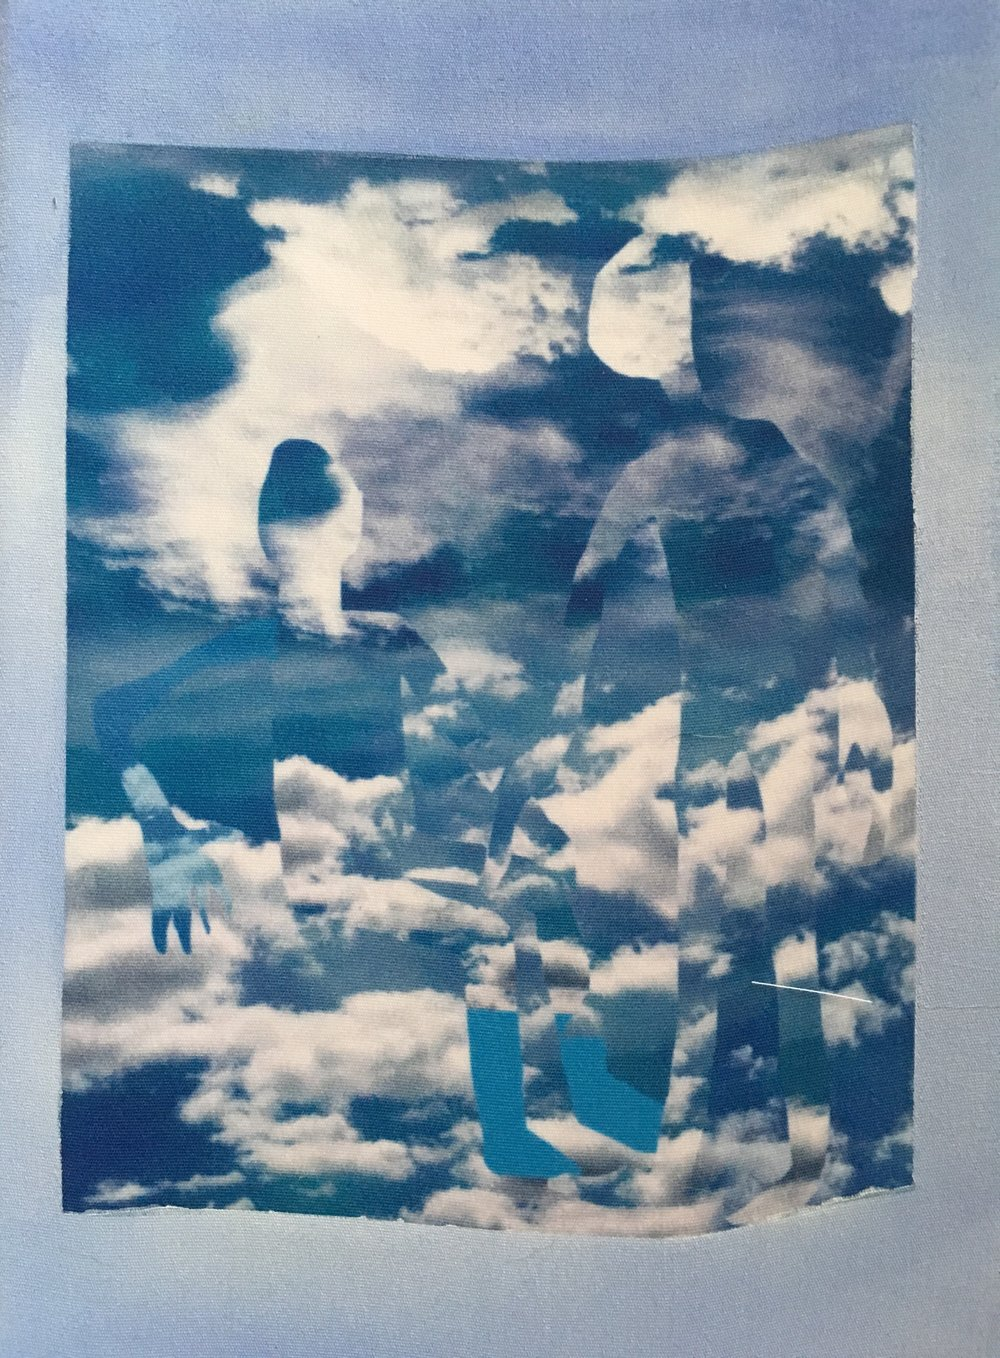 Rosalind Breen,  Team 2 , 2017, Digital collage printed on silk with acrylic, 12 x 16 inches